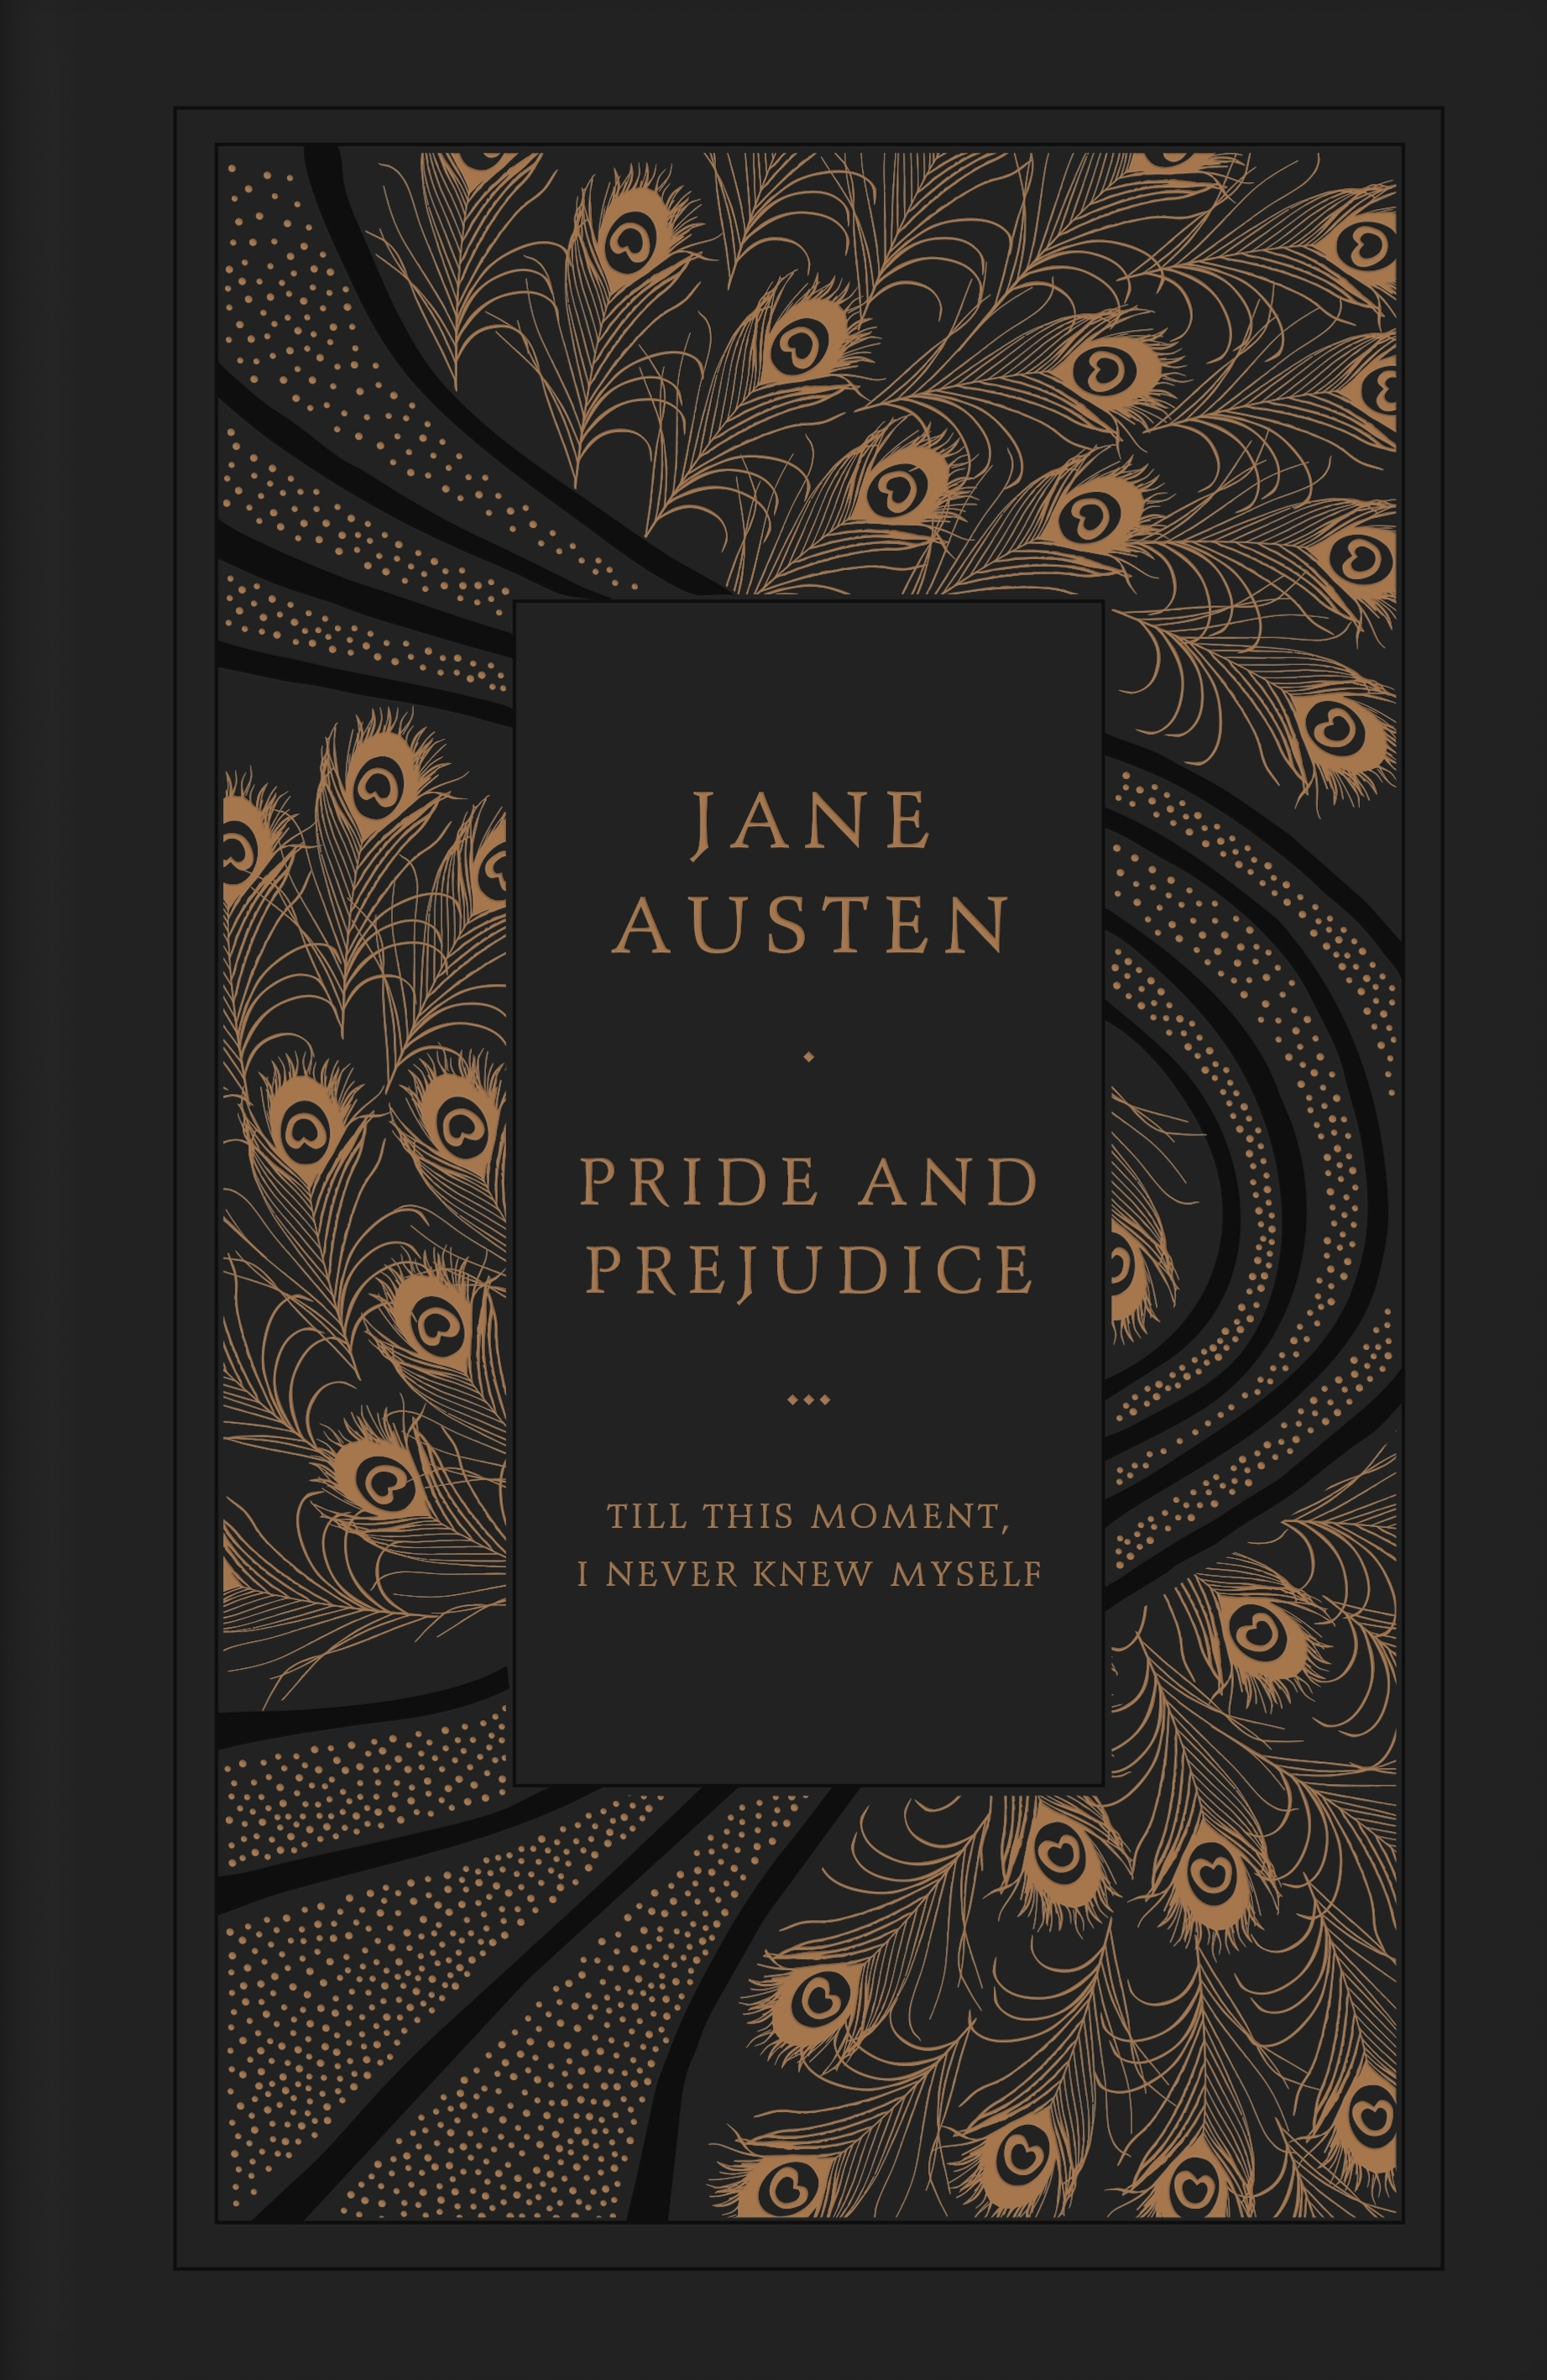 Pride and Prejudice (Faux Leather Edition) by Jane Austen, ISBN: 9780241256640